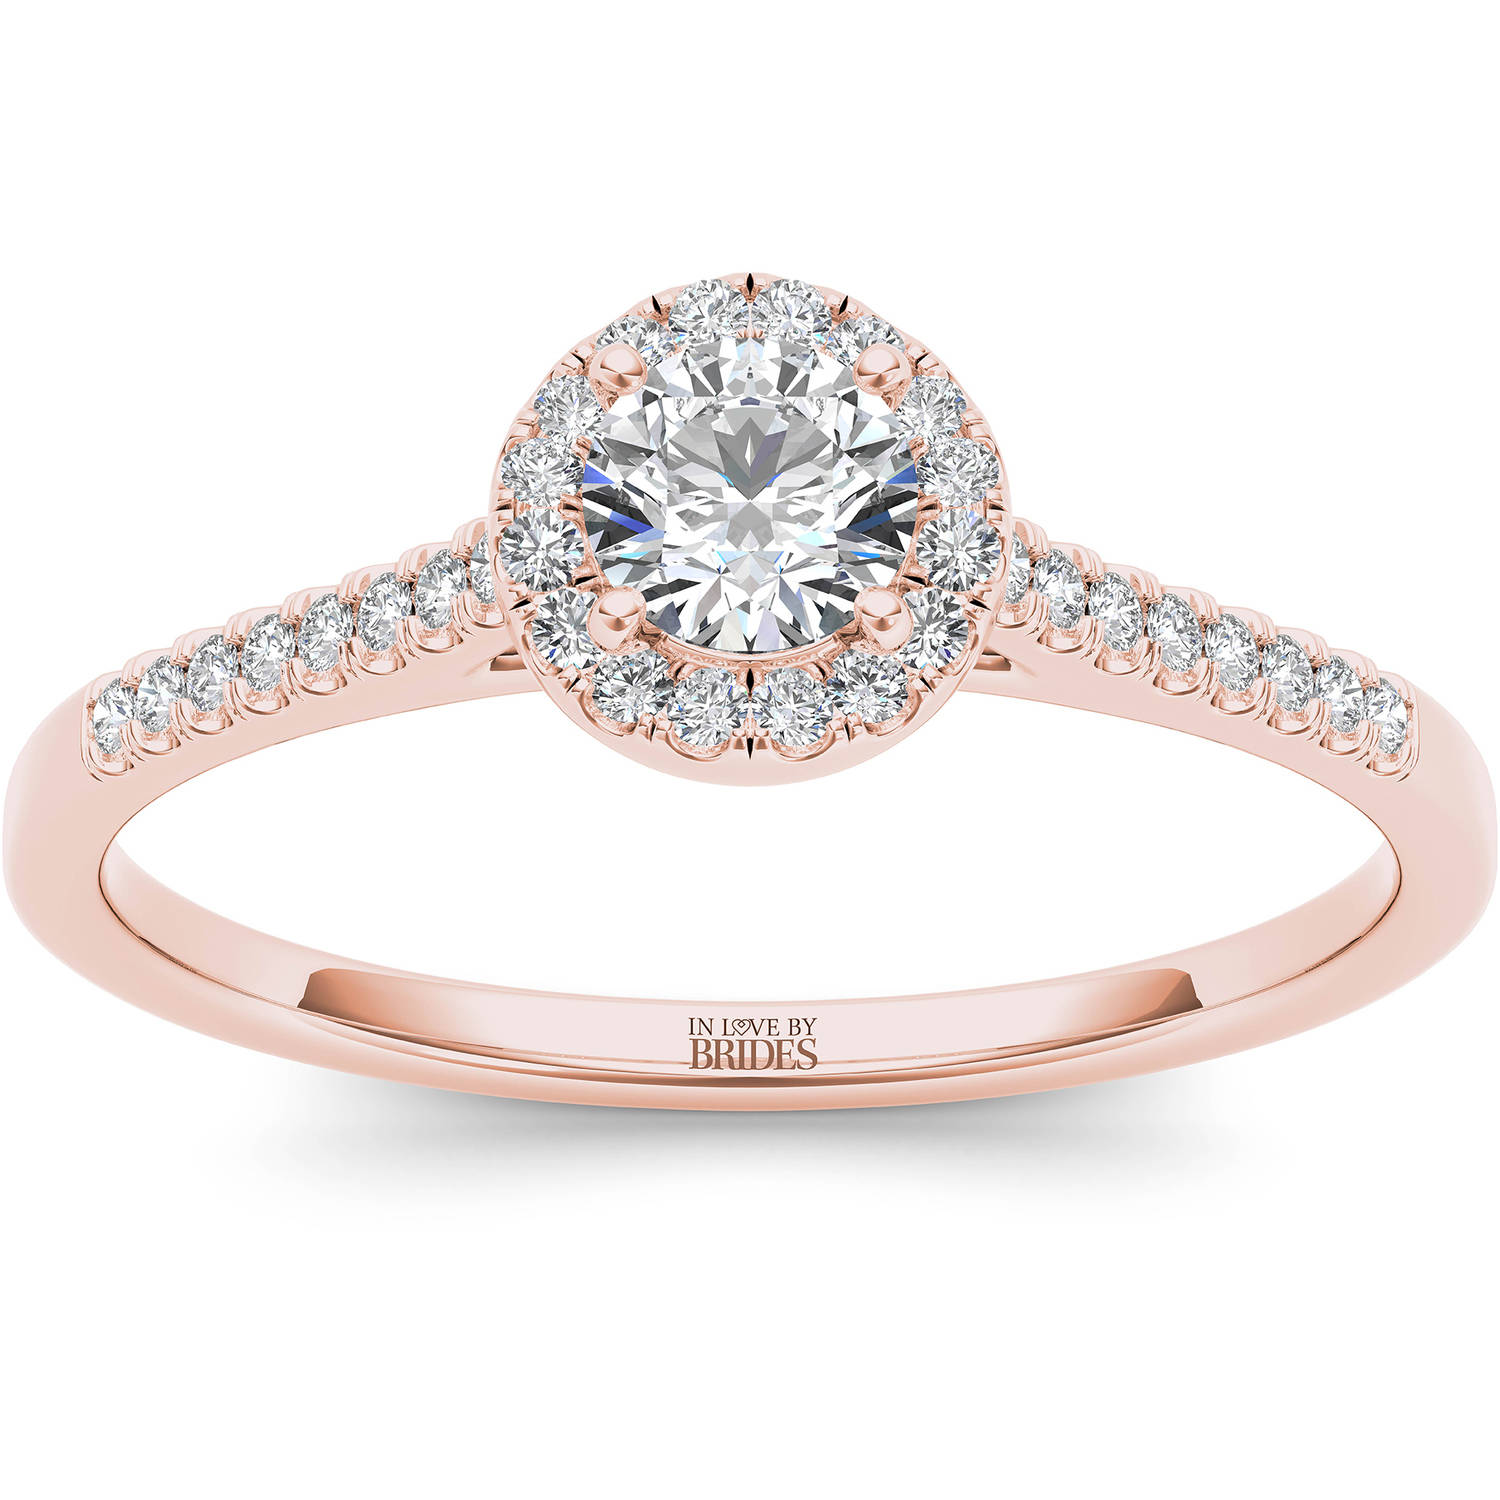 IN LOVE BY BRIDES 3/8 Carat T.W. Certified Diamond Halo 14kt Pink Gold Engagement Ring